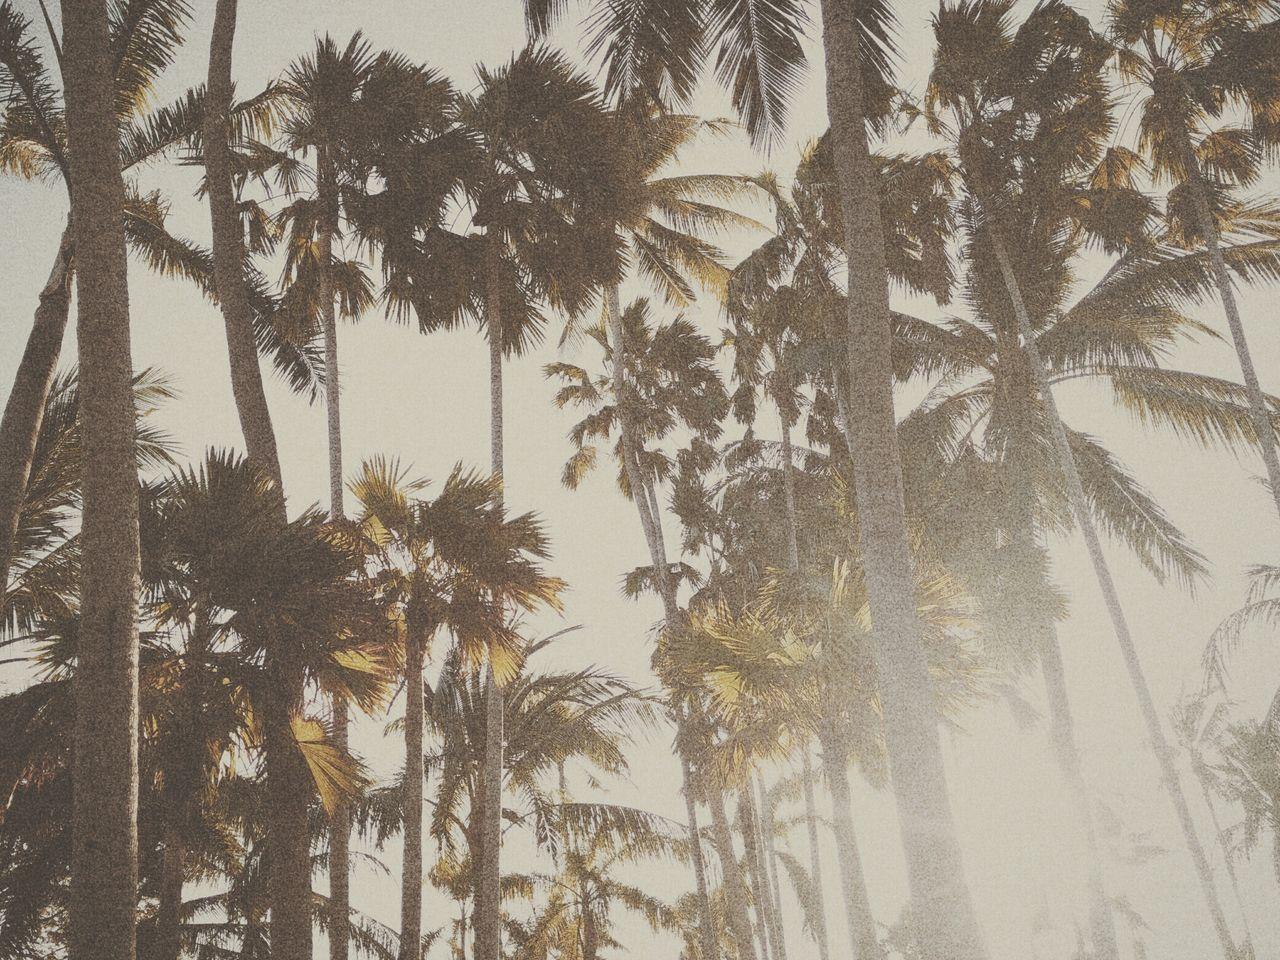 palm tree, tree, tree trunk, low angle view, nature, growth, no people, outdoors, day, sky